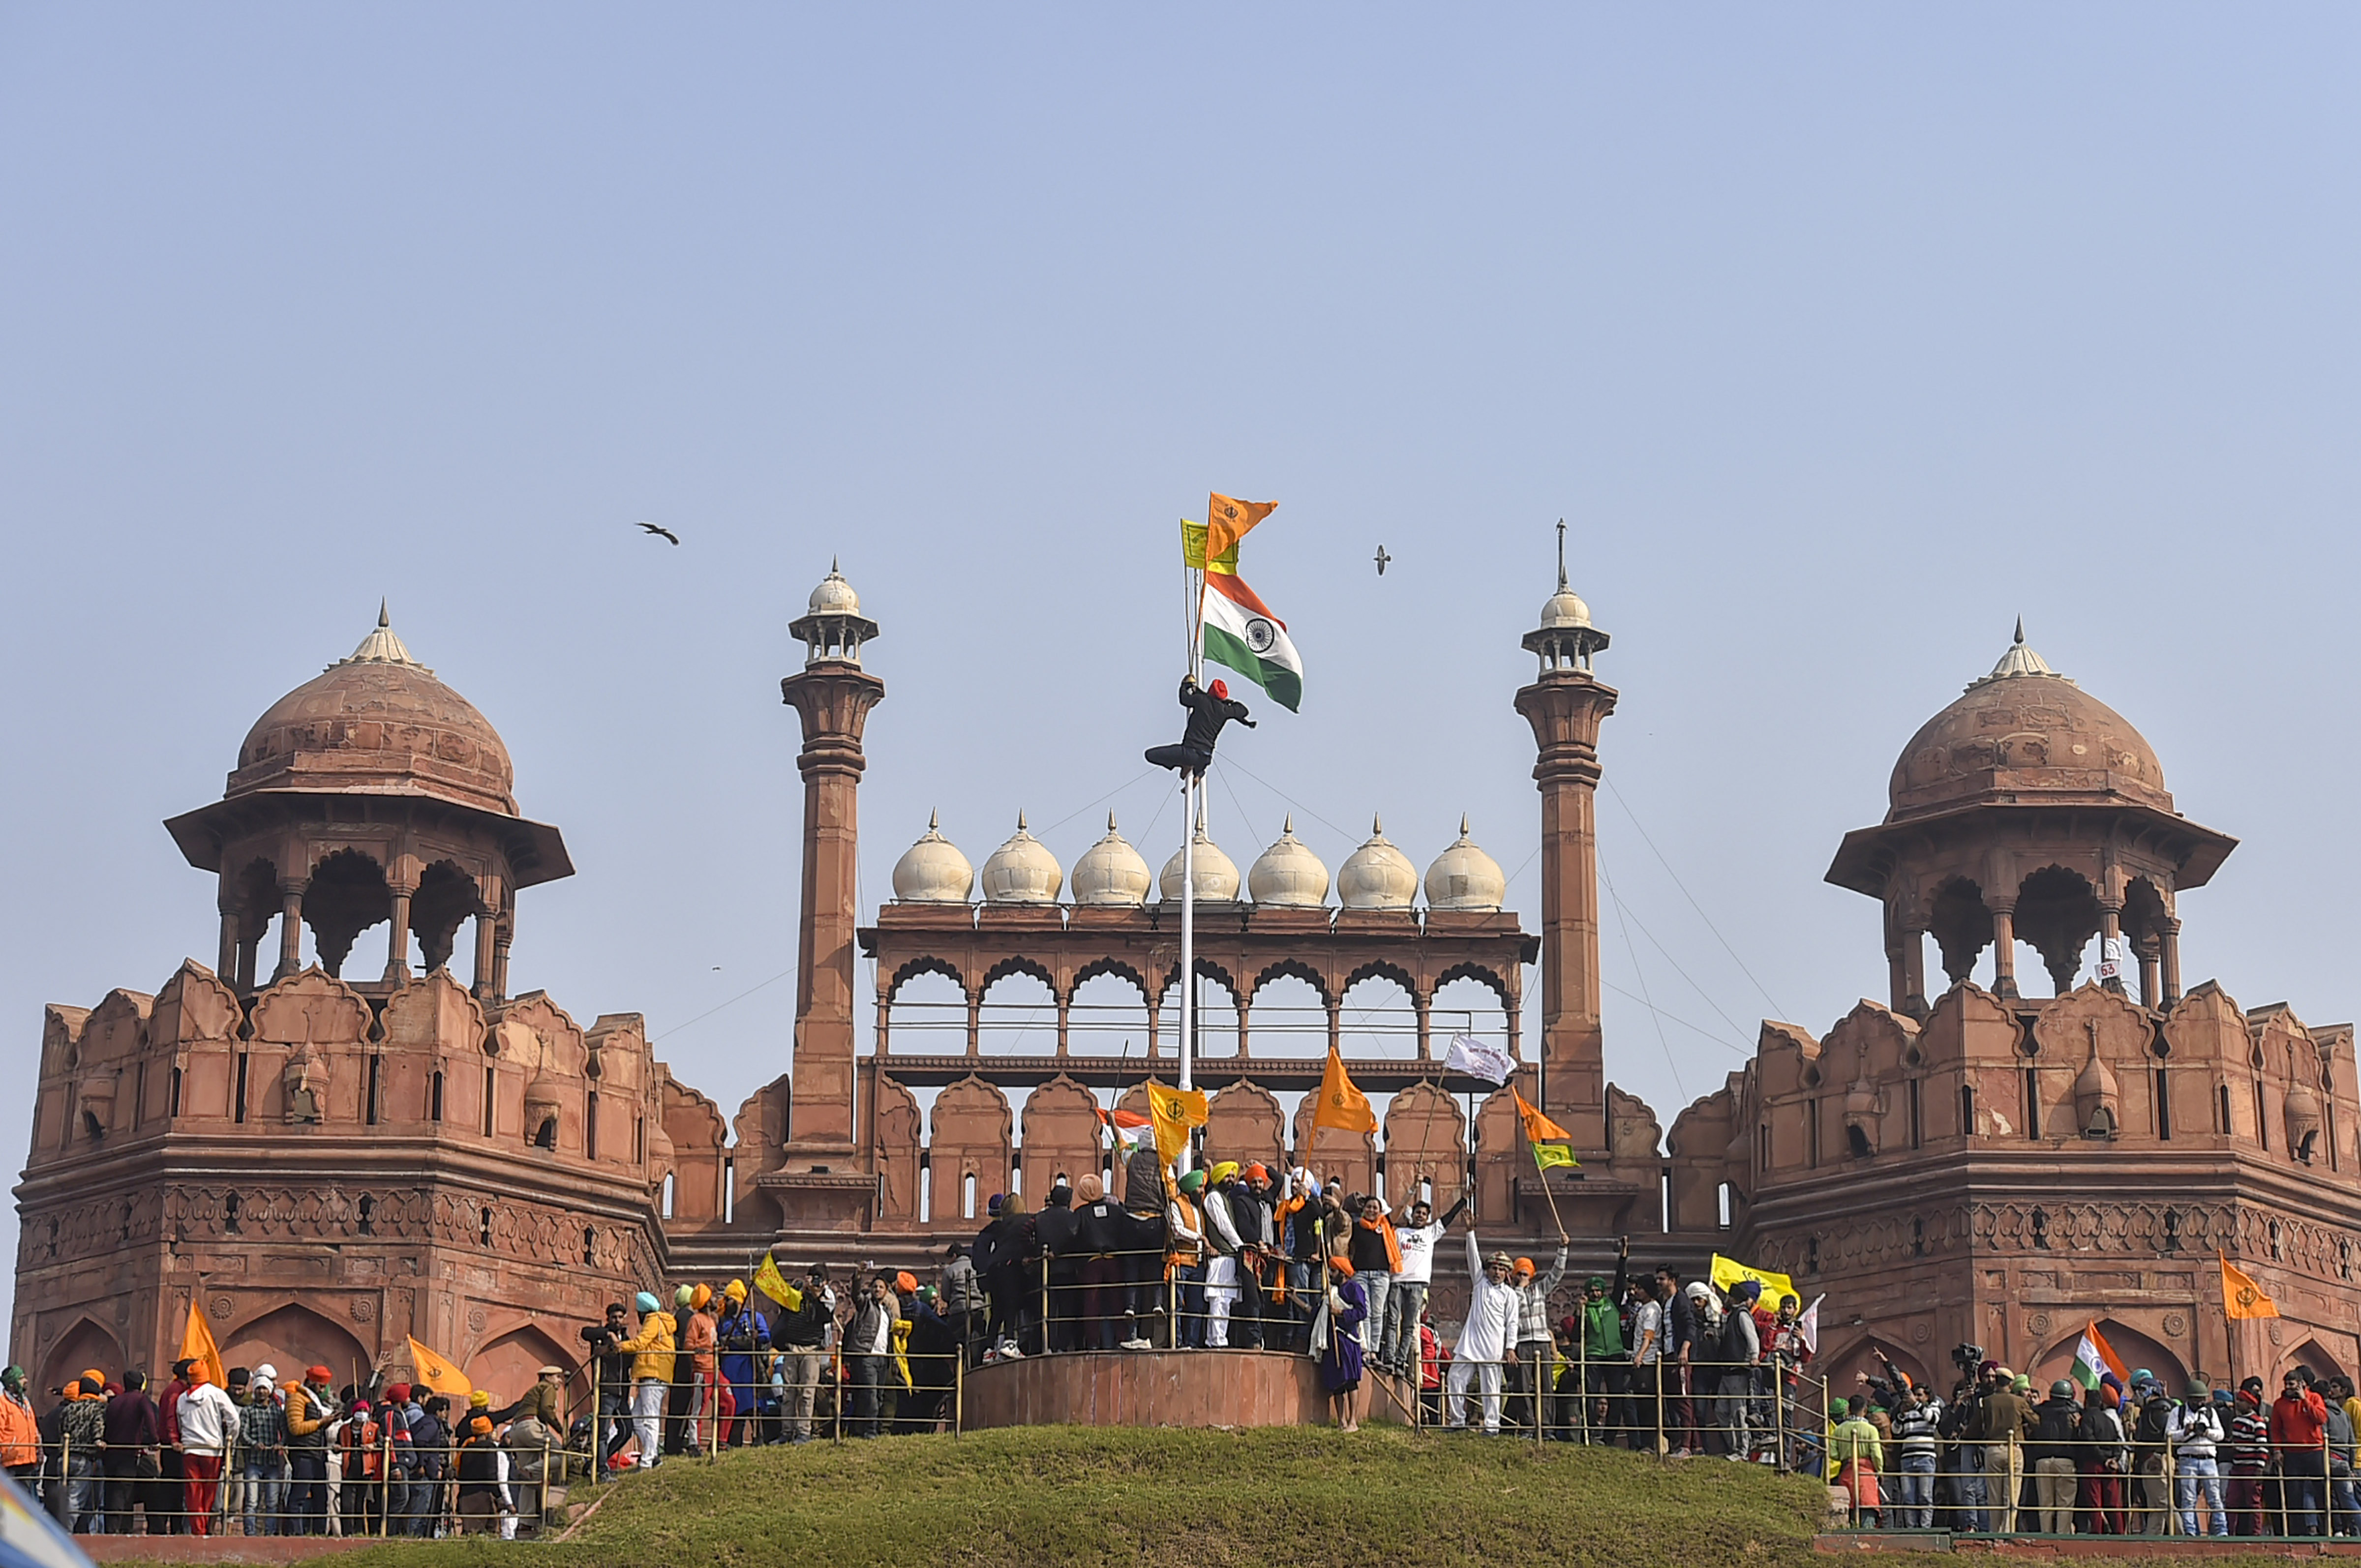 New Delhi: Farmers hoist flags at the Red Fort during the 'tractor rally' amid the 72nd Republic Day celebrations, in New Delhi, Tuesday, Jan. 26,  2021. (PTI Photo/Arun Sharma)(PTI01_26_2021_000385B)